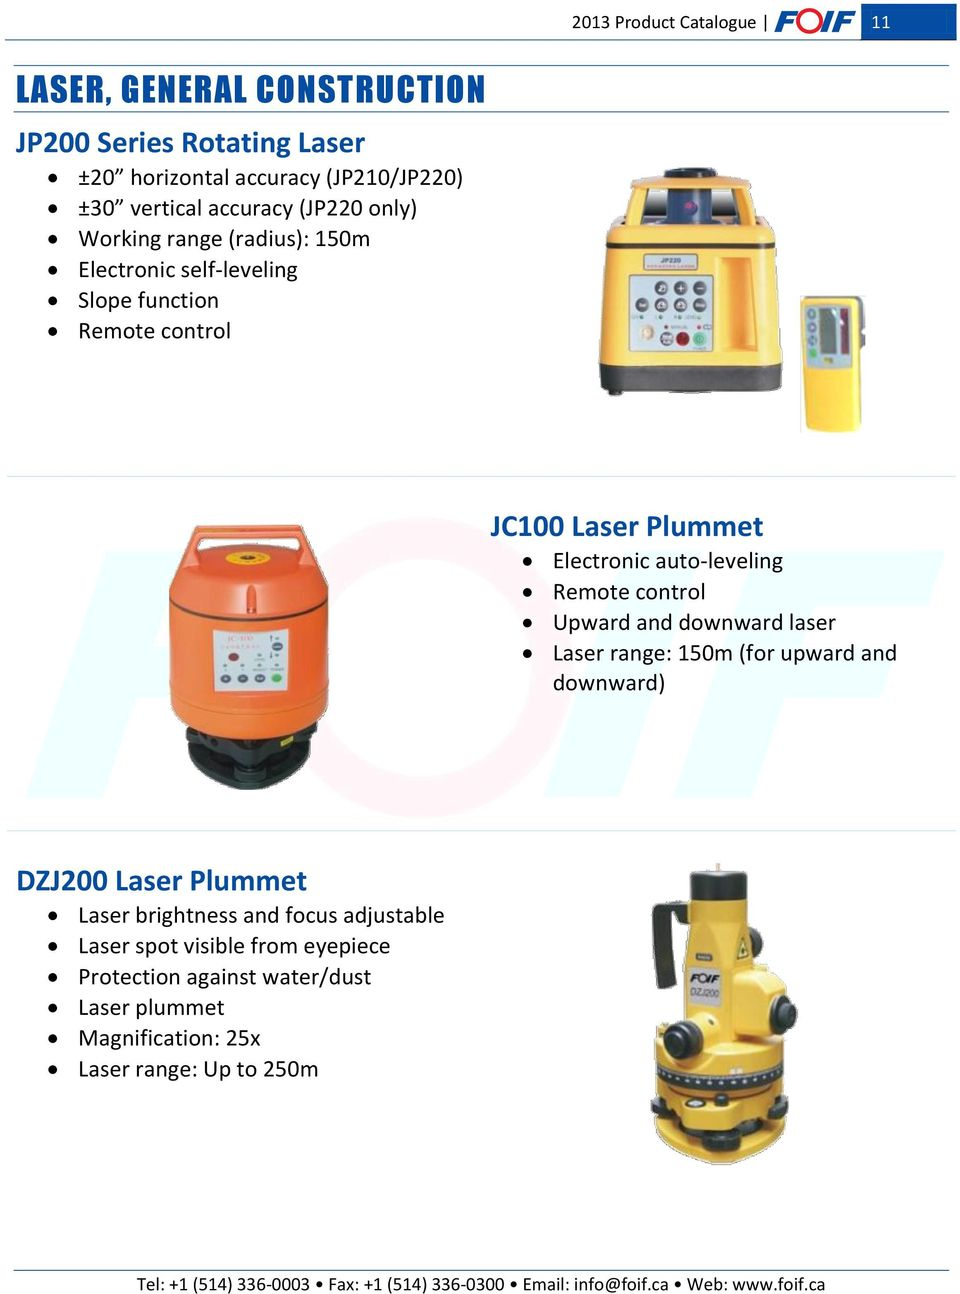 auto-leveling Remote control Upward and downward laser Laser range: 150m (for upward and downward) DZJ200 Laser Plummet Laser brightness